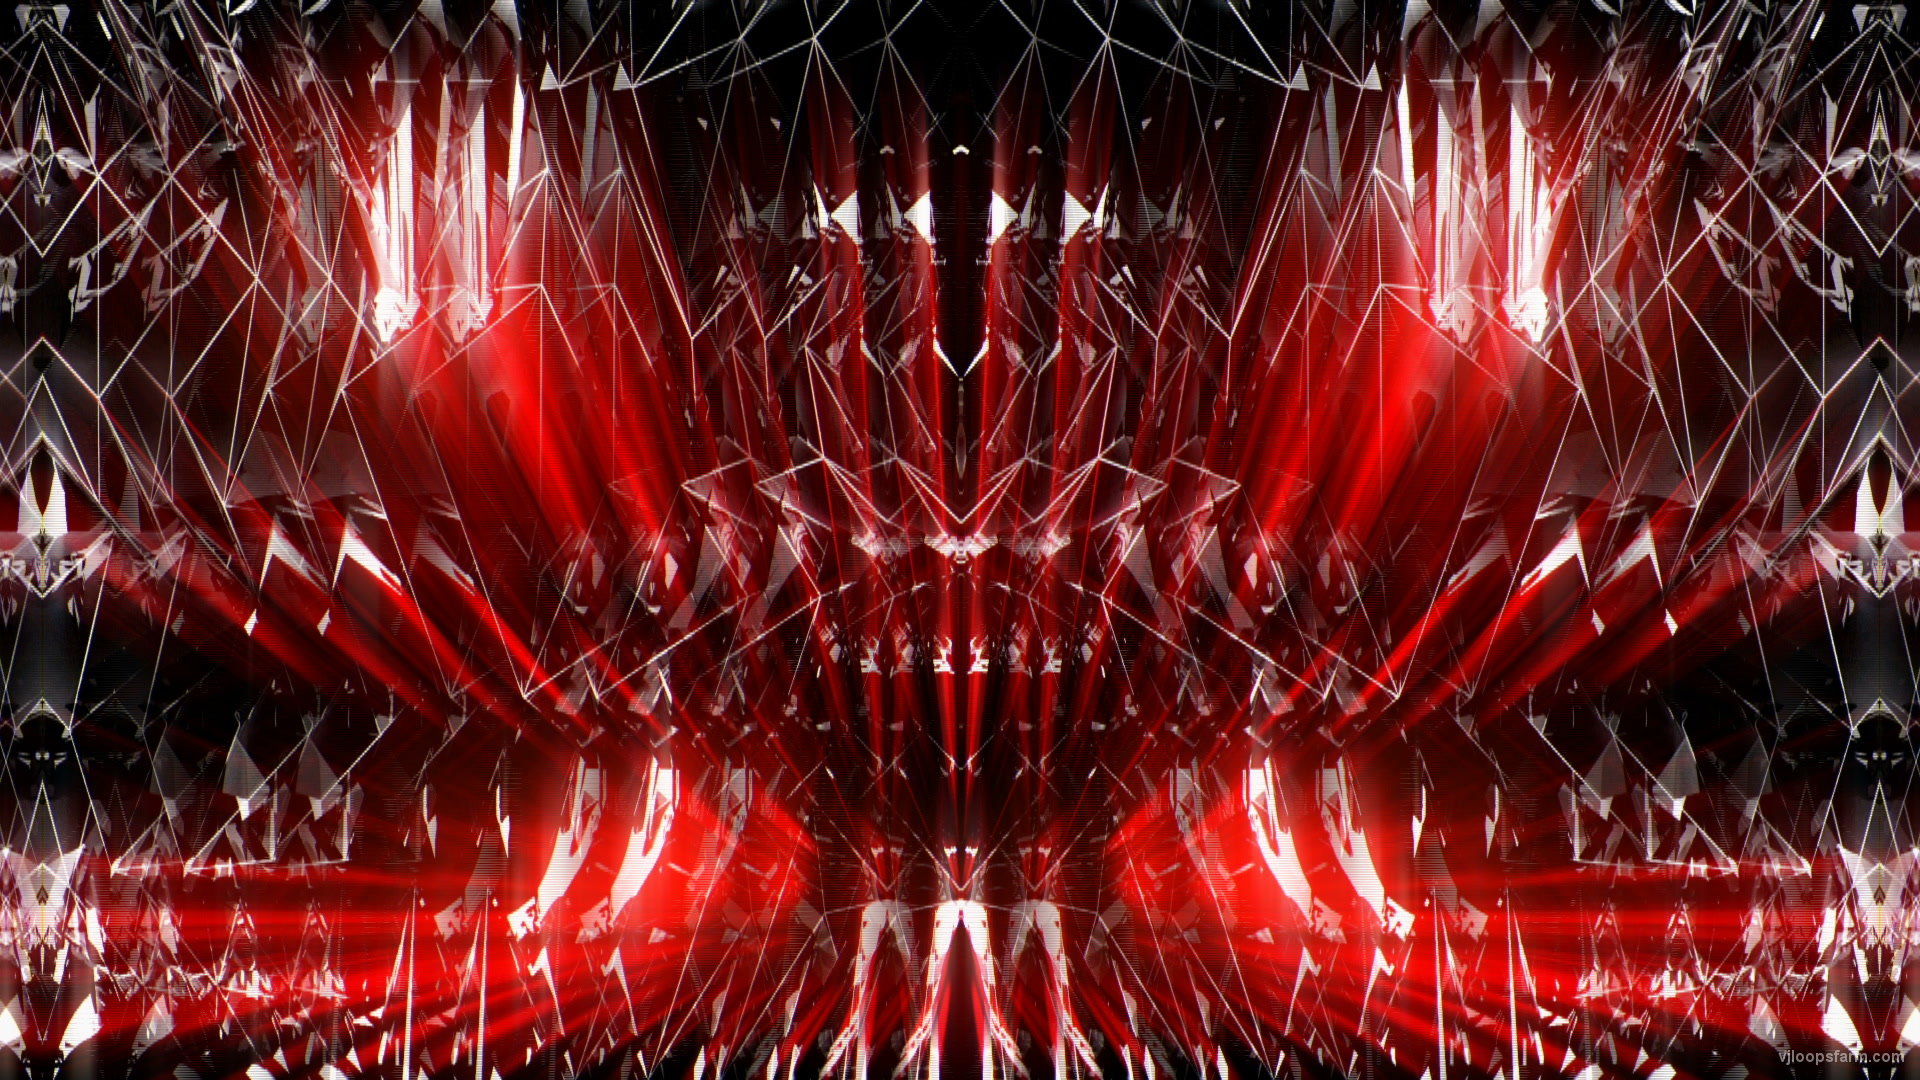 vj video background Abstract-Tech-Cyber-Structure-Red-Wireframe-Symmetry-RED-Motion-Background-Video-Art-VJ-Loop_003